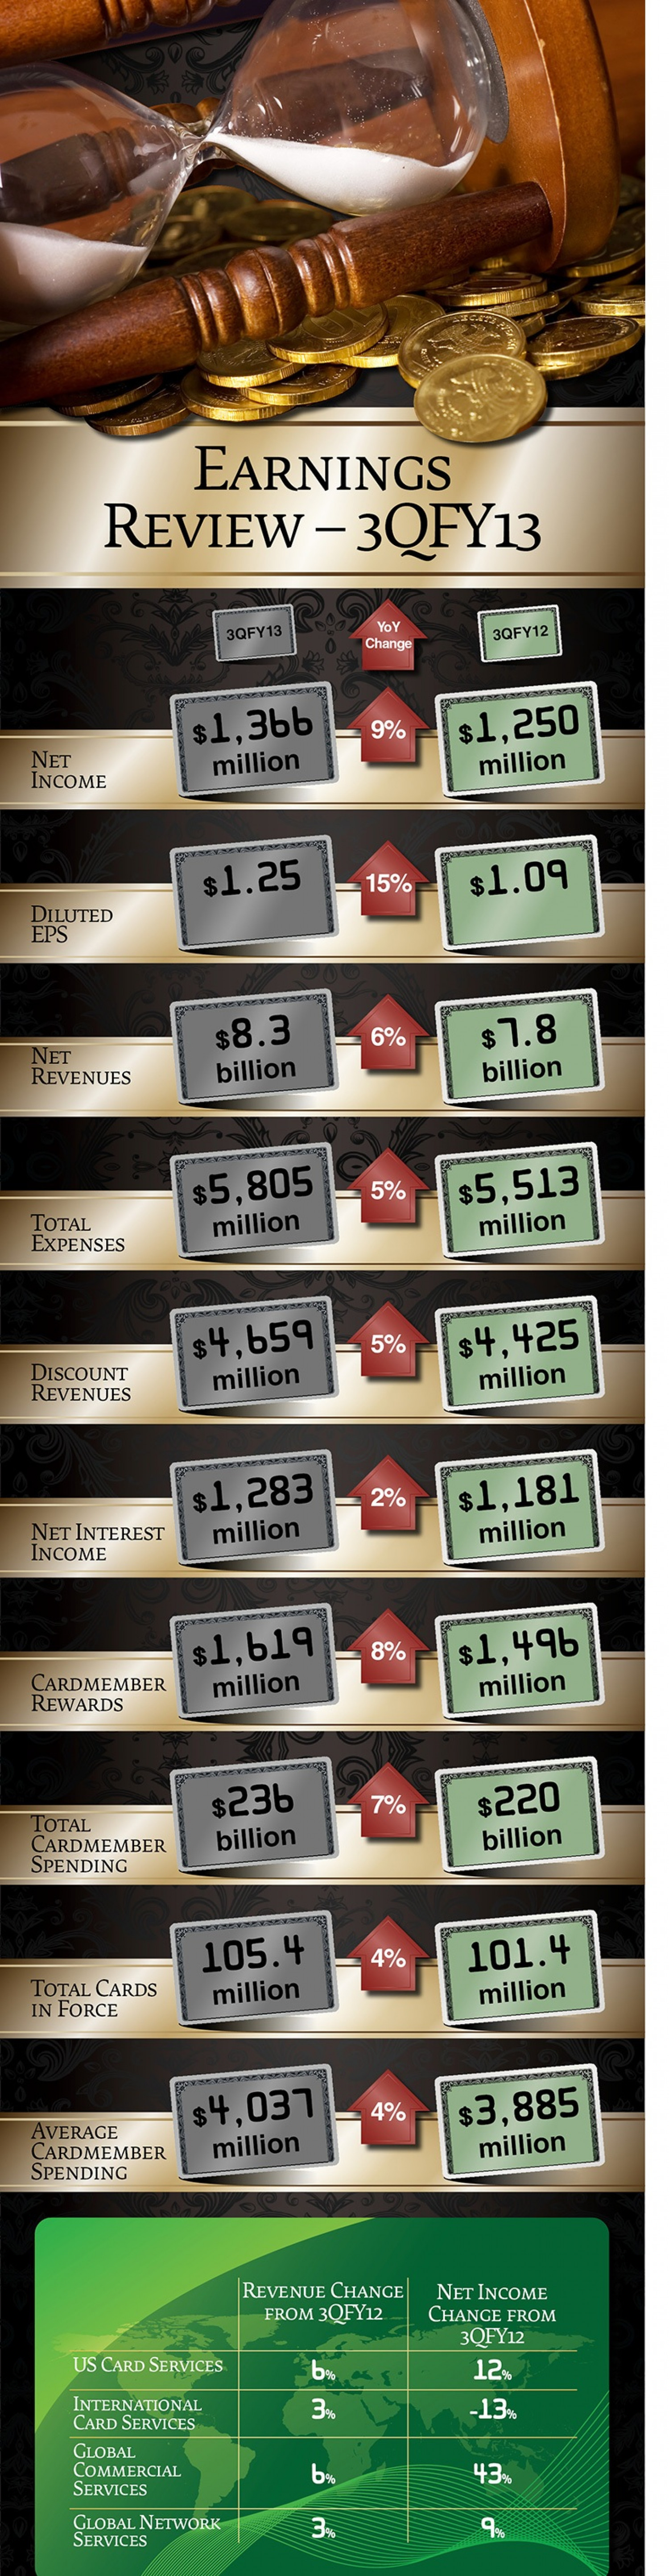 American Express (AXP) Earnings Review Infographic